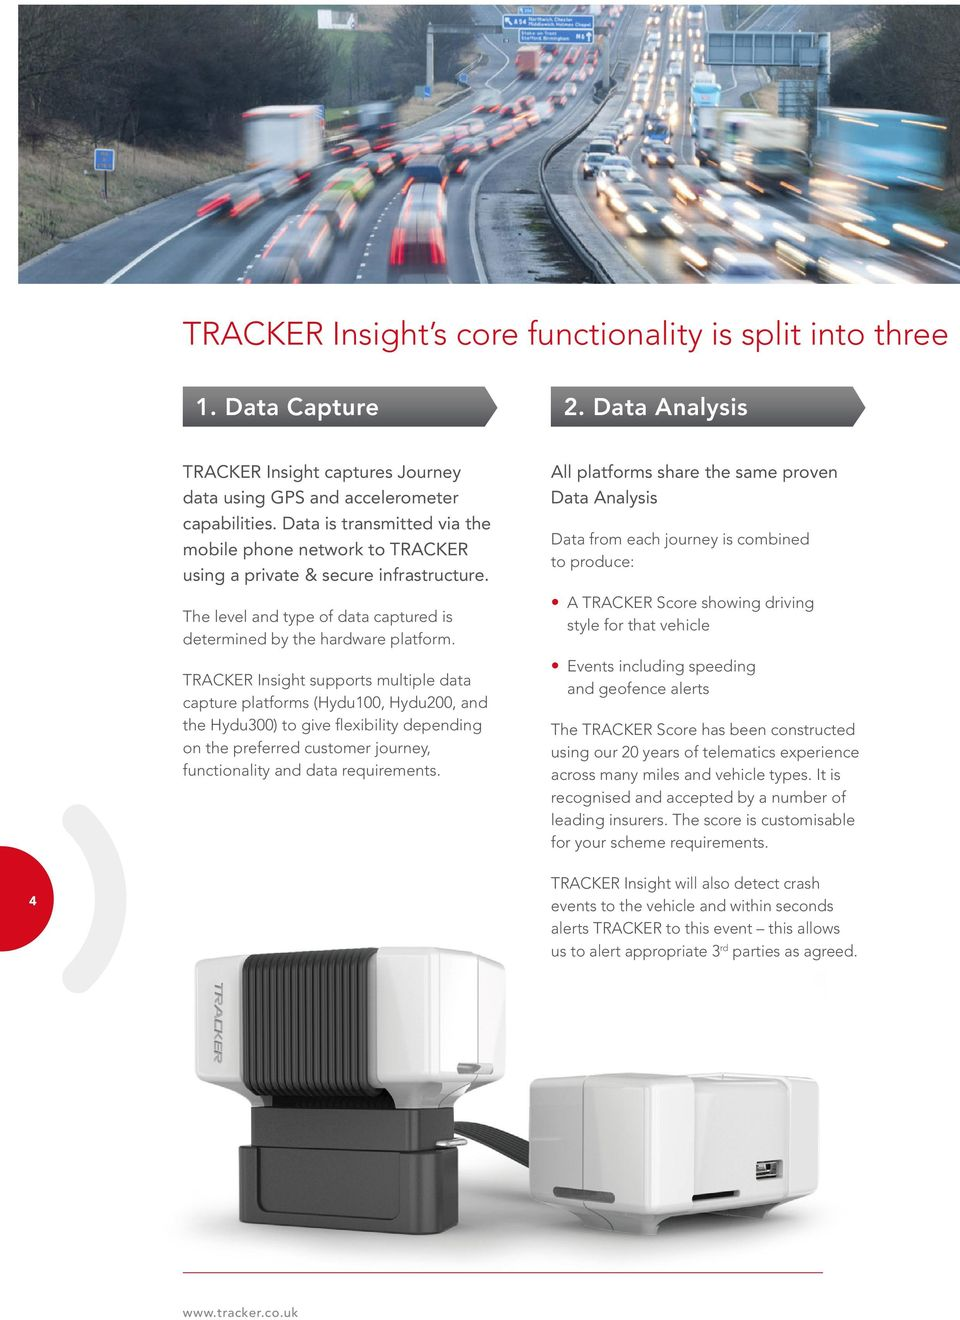 TRACKER Insight supports multiple data capture platforms (Hydu100, Hydu200, and the Hydu300) to give flexibility depending on the preferred customer journey, functionality and data requirements.